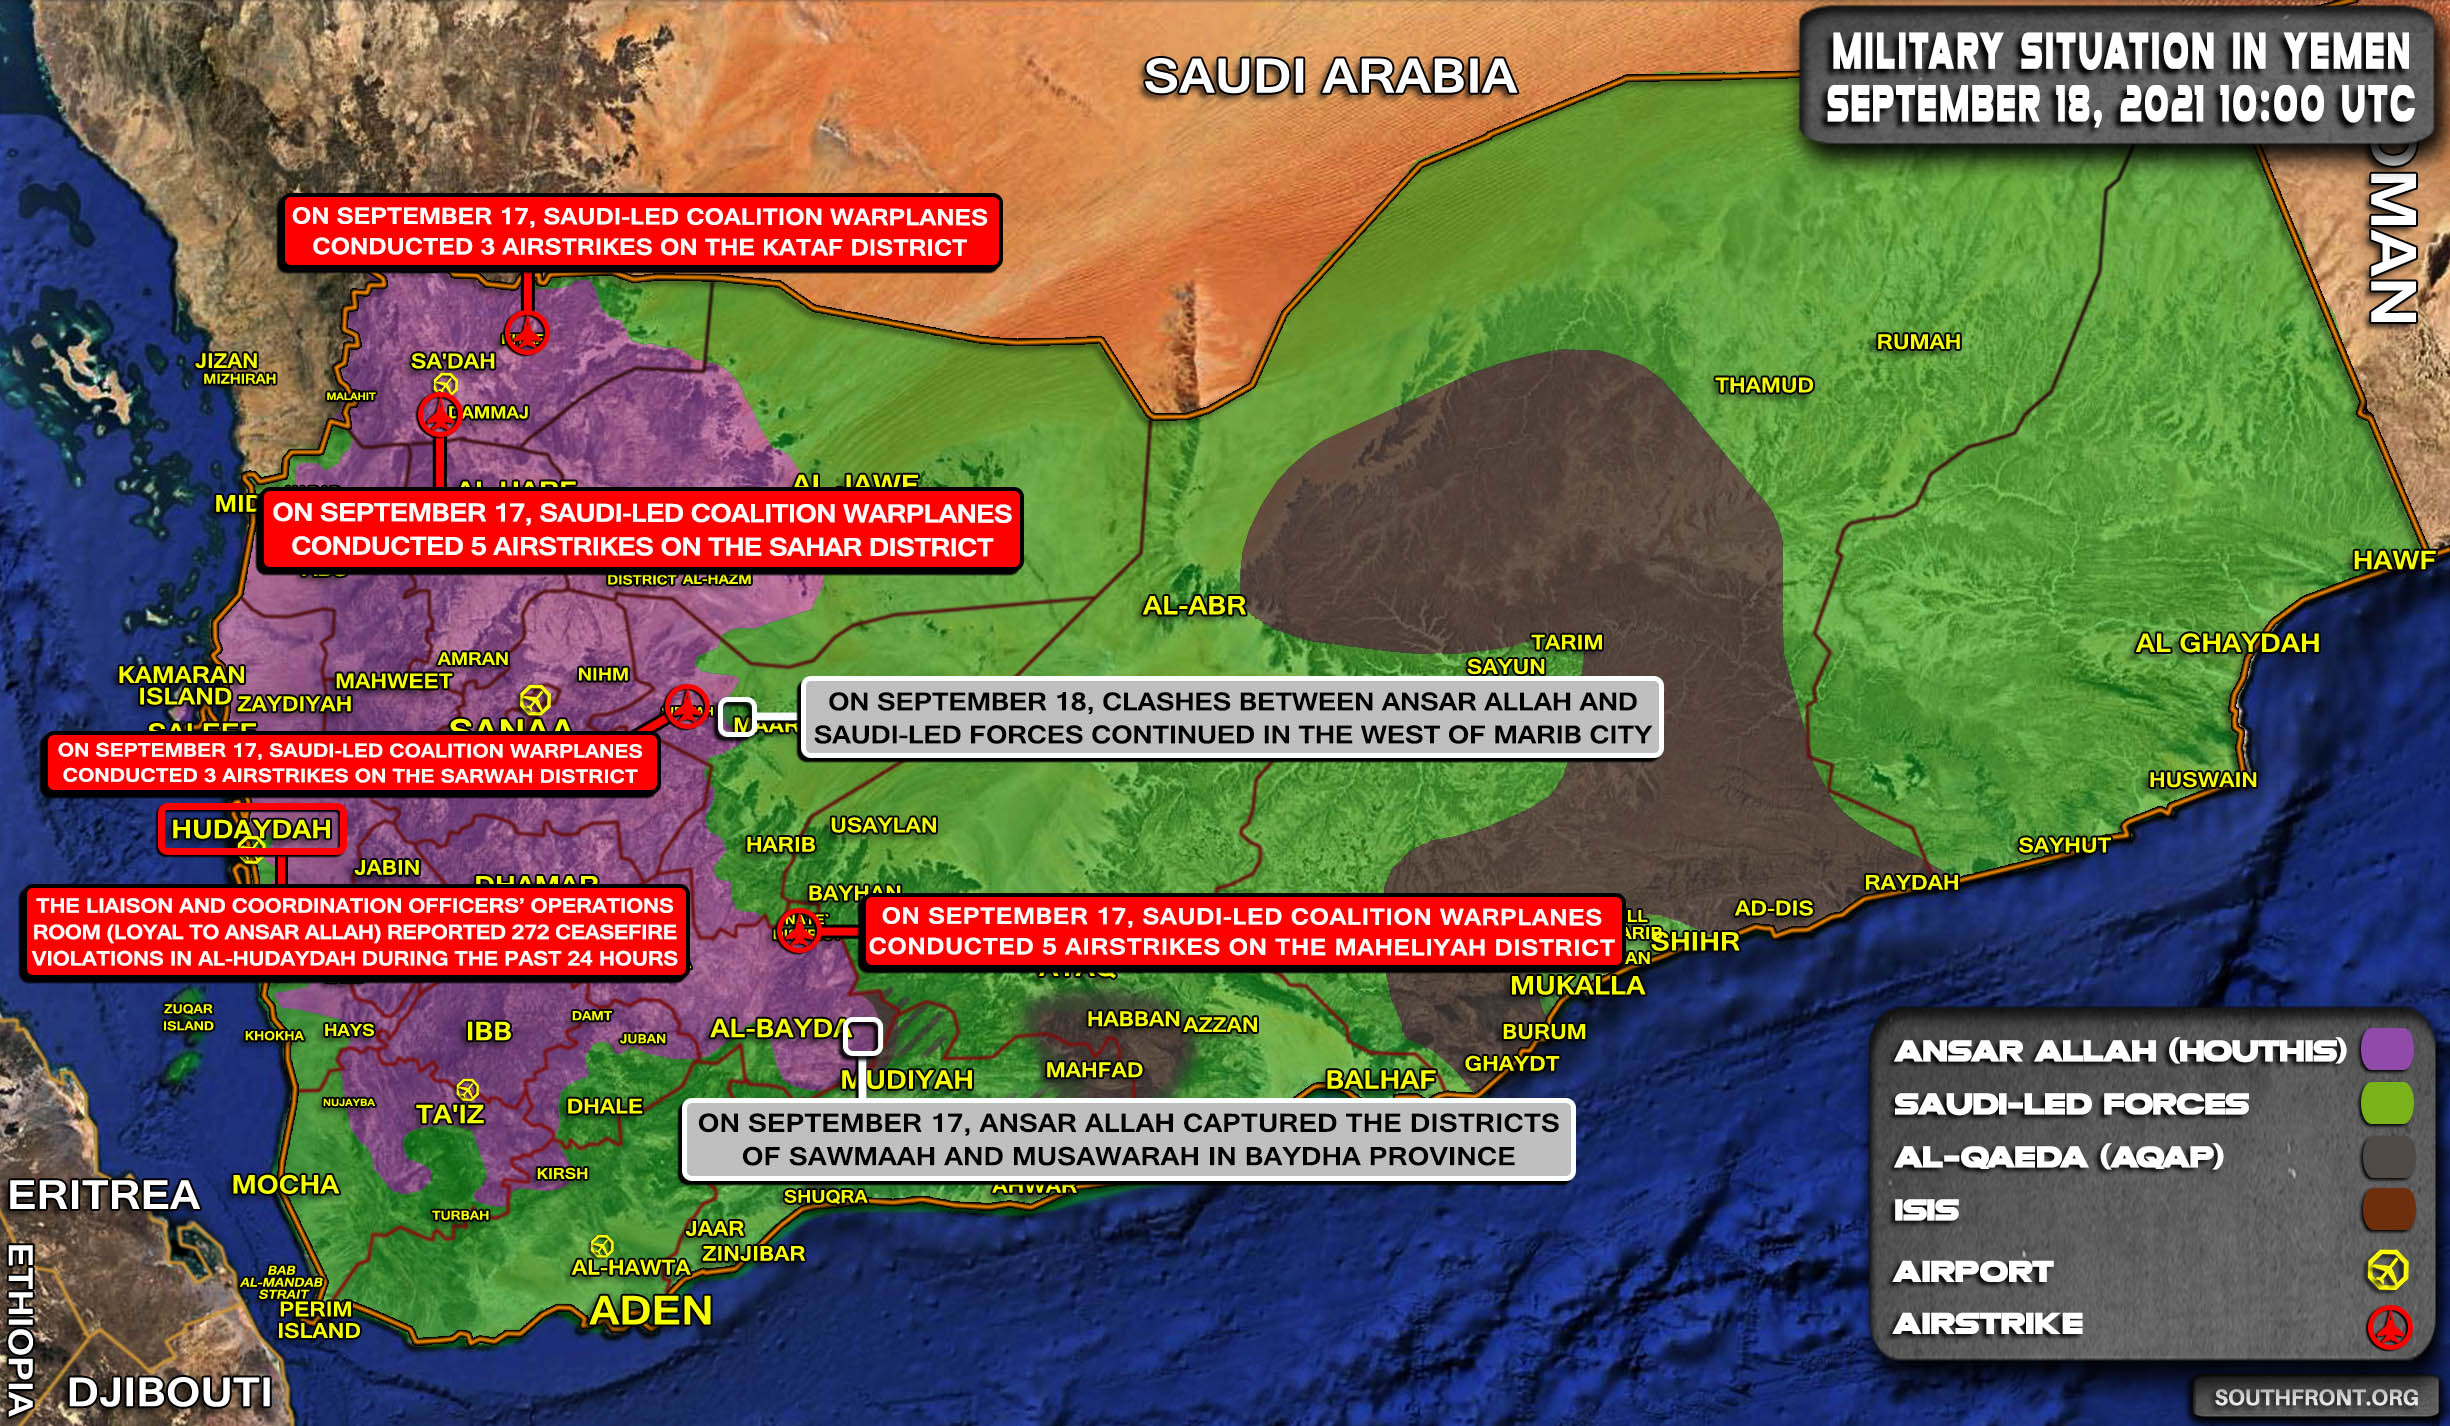 Military Situation In Yemen On September 18, 2021 (Map Update)